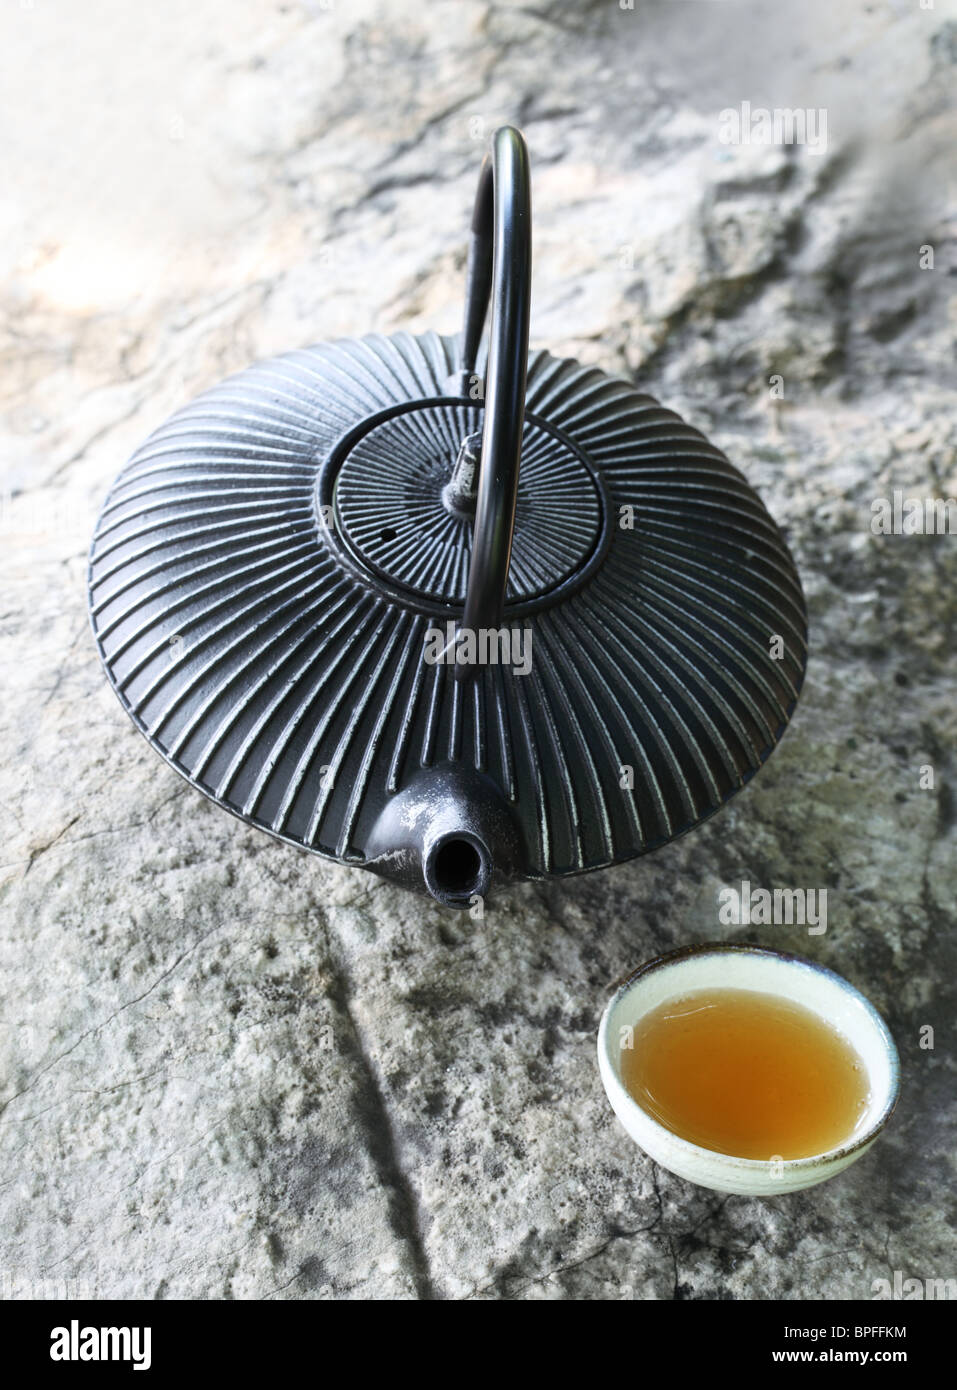 Black iron asian teapot with cup of tea on rock,Closeup. - Stock Image